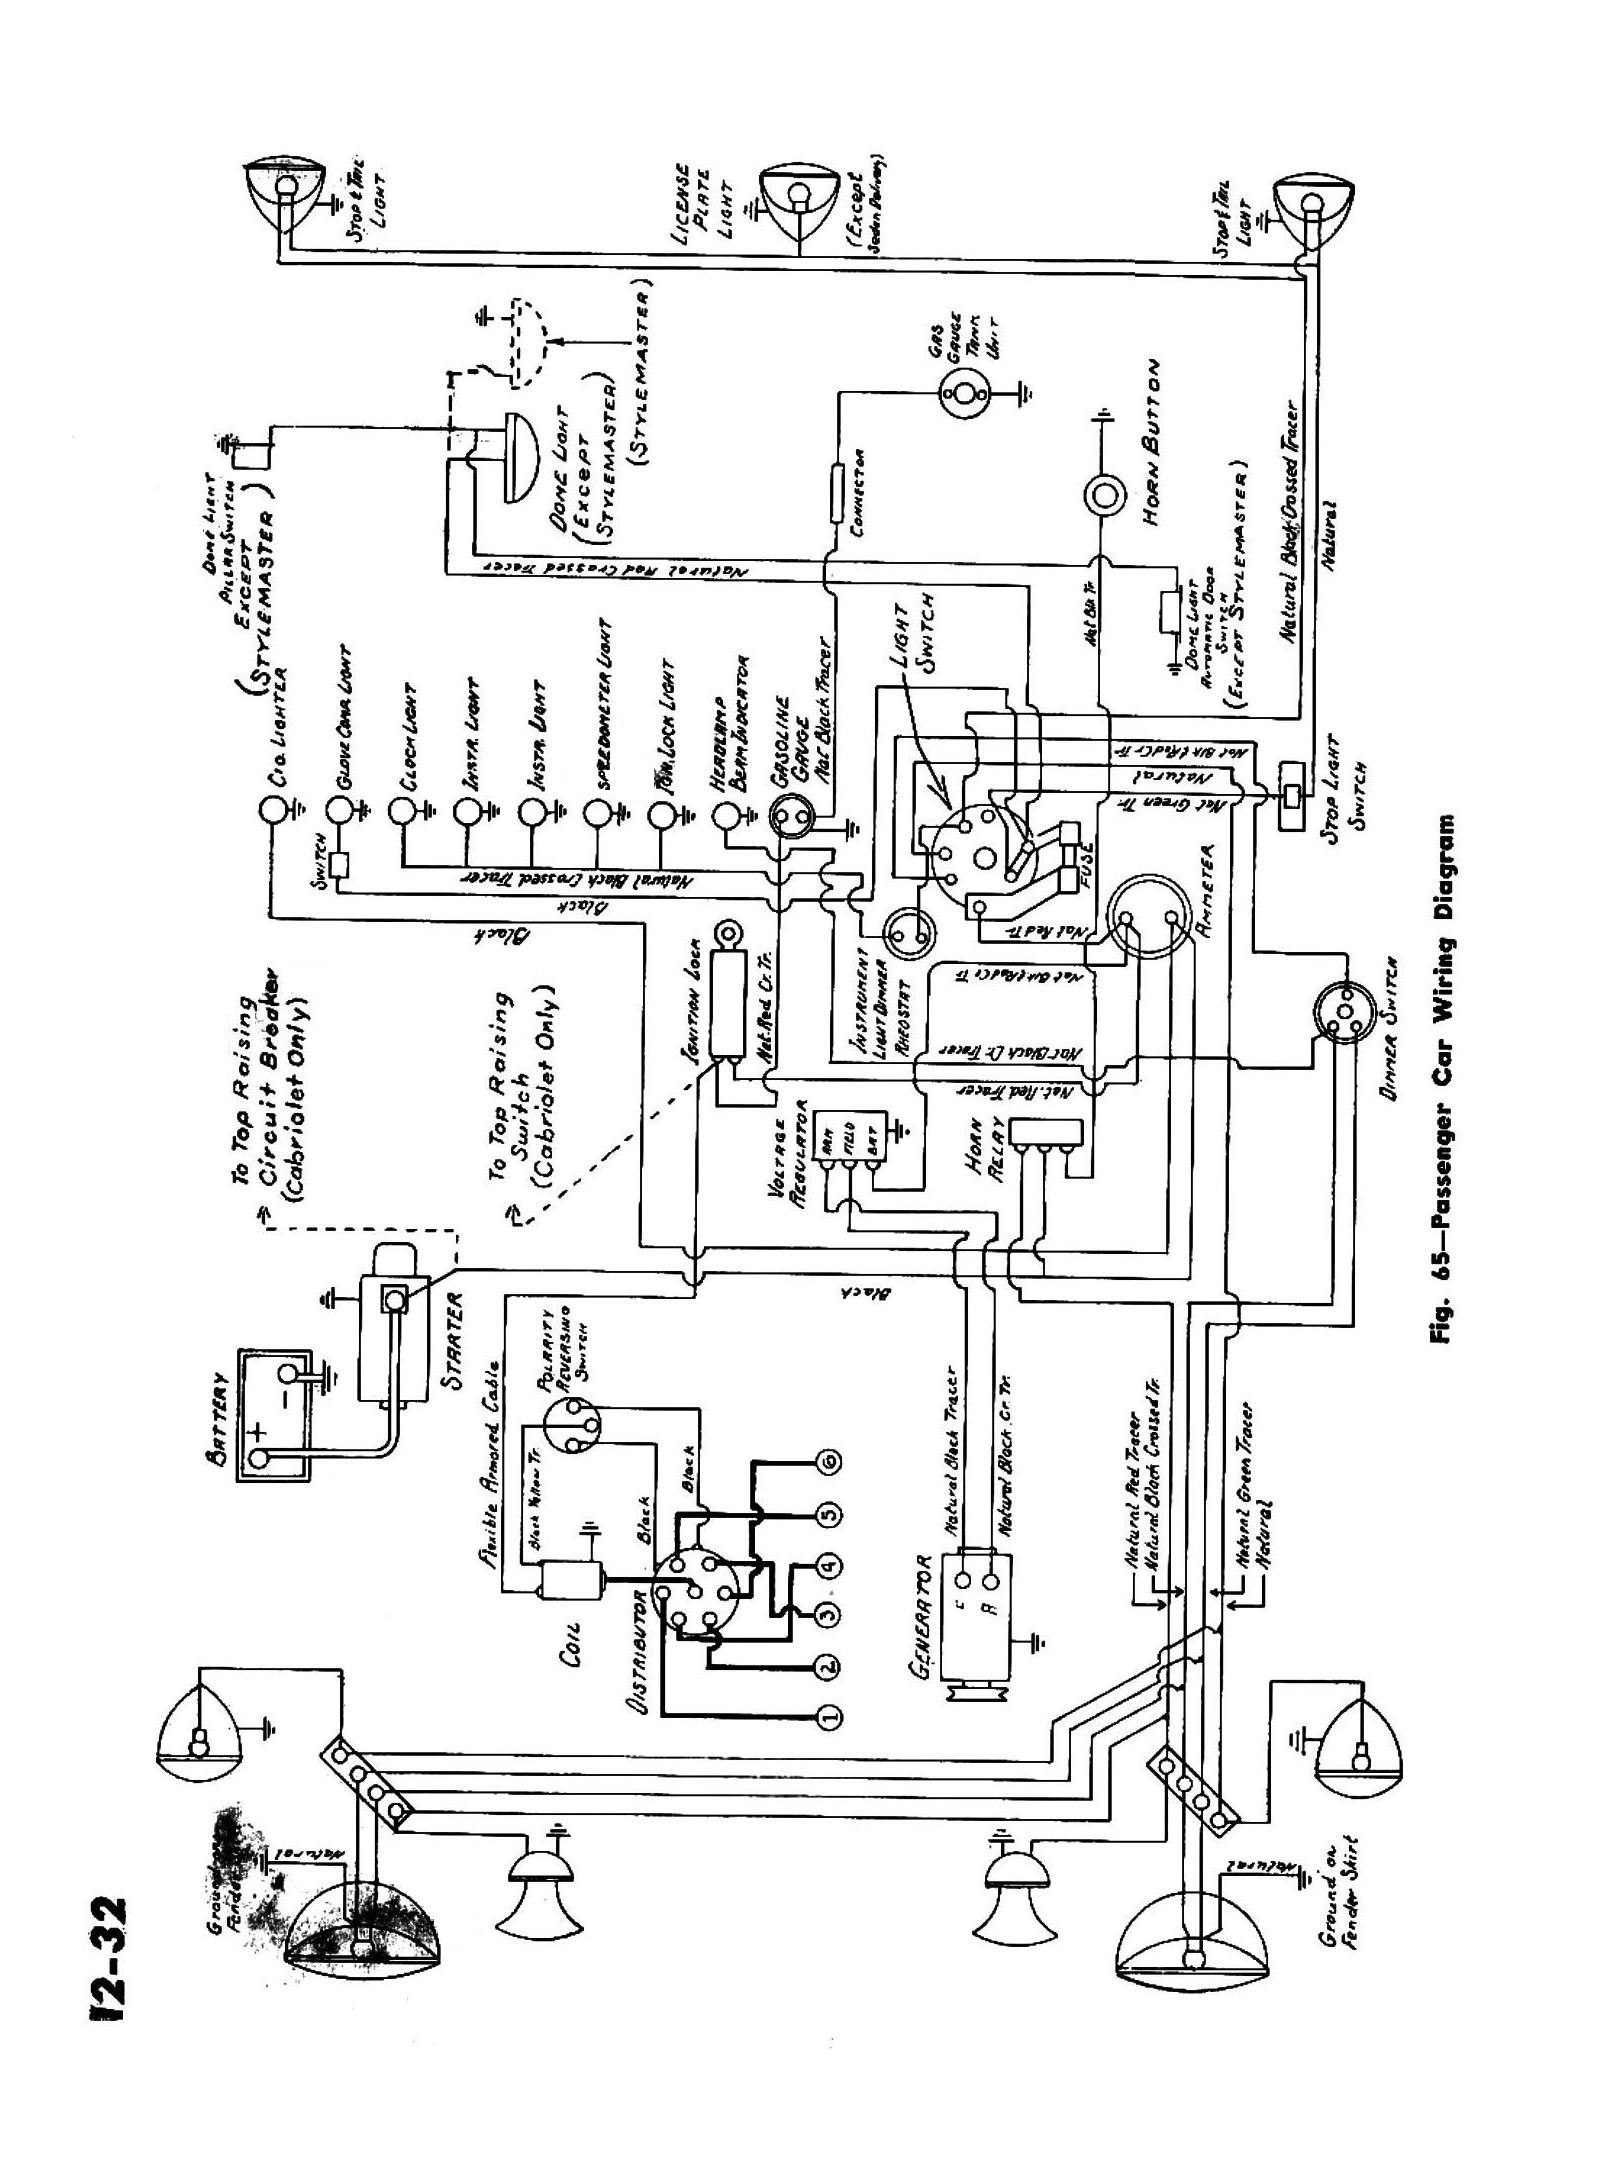 91 Chevy Coil Wiring Diagram Library Ebook Related Diagrams 1990 Mazda Miata Pdf 1945 Passenger Car